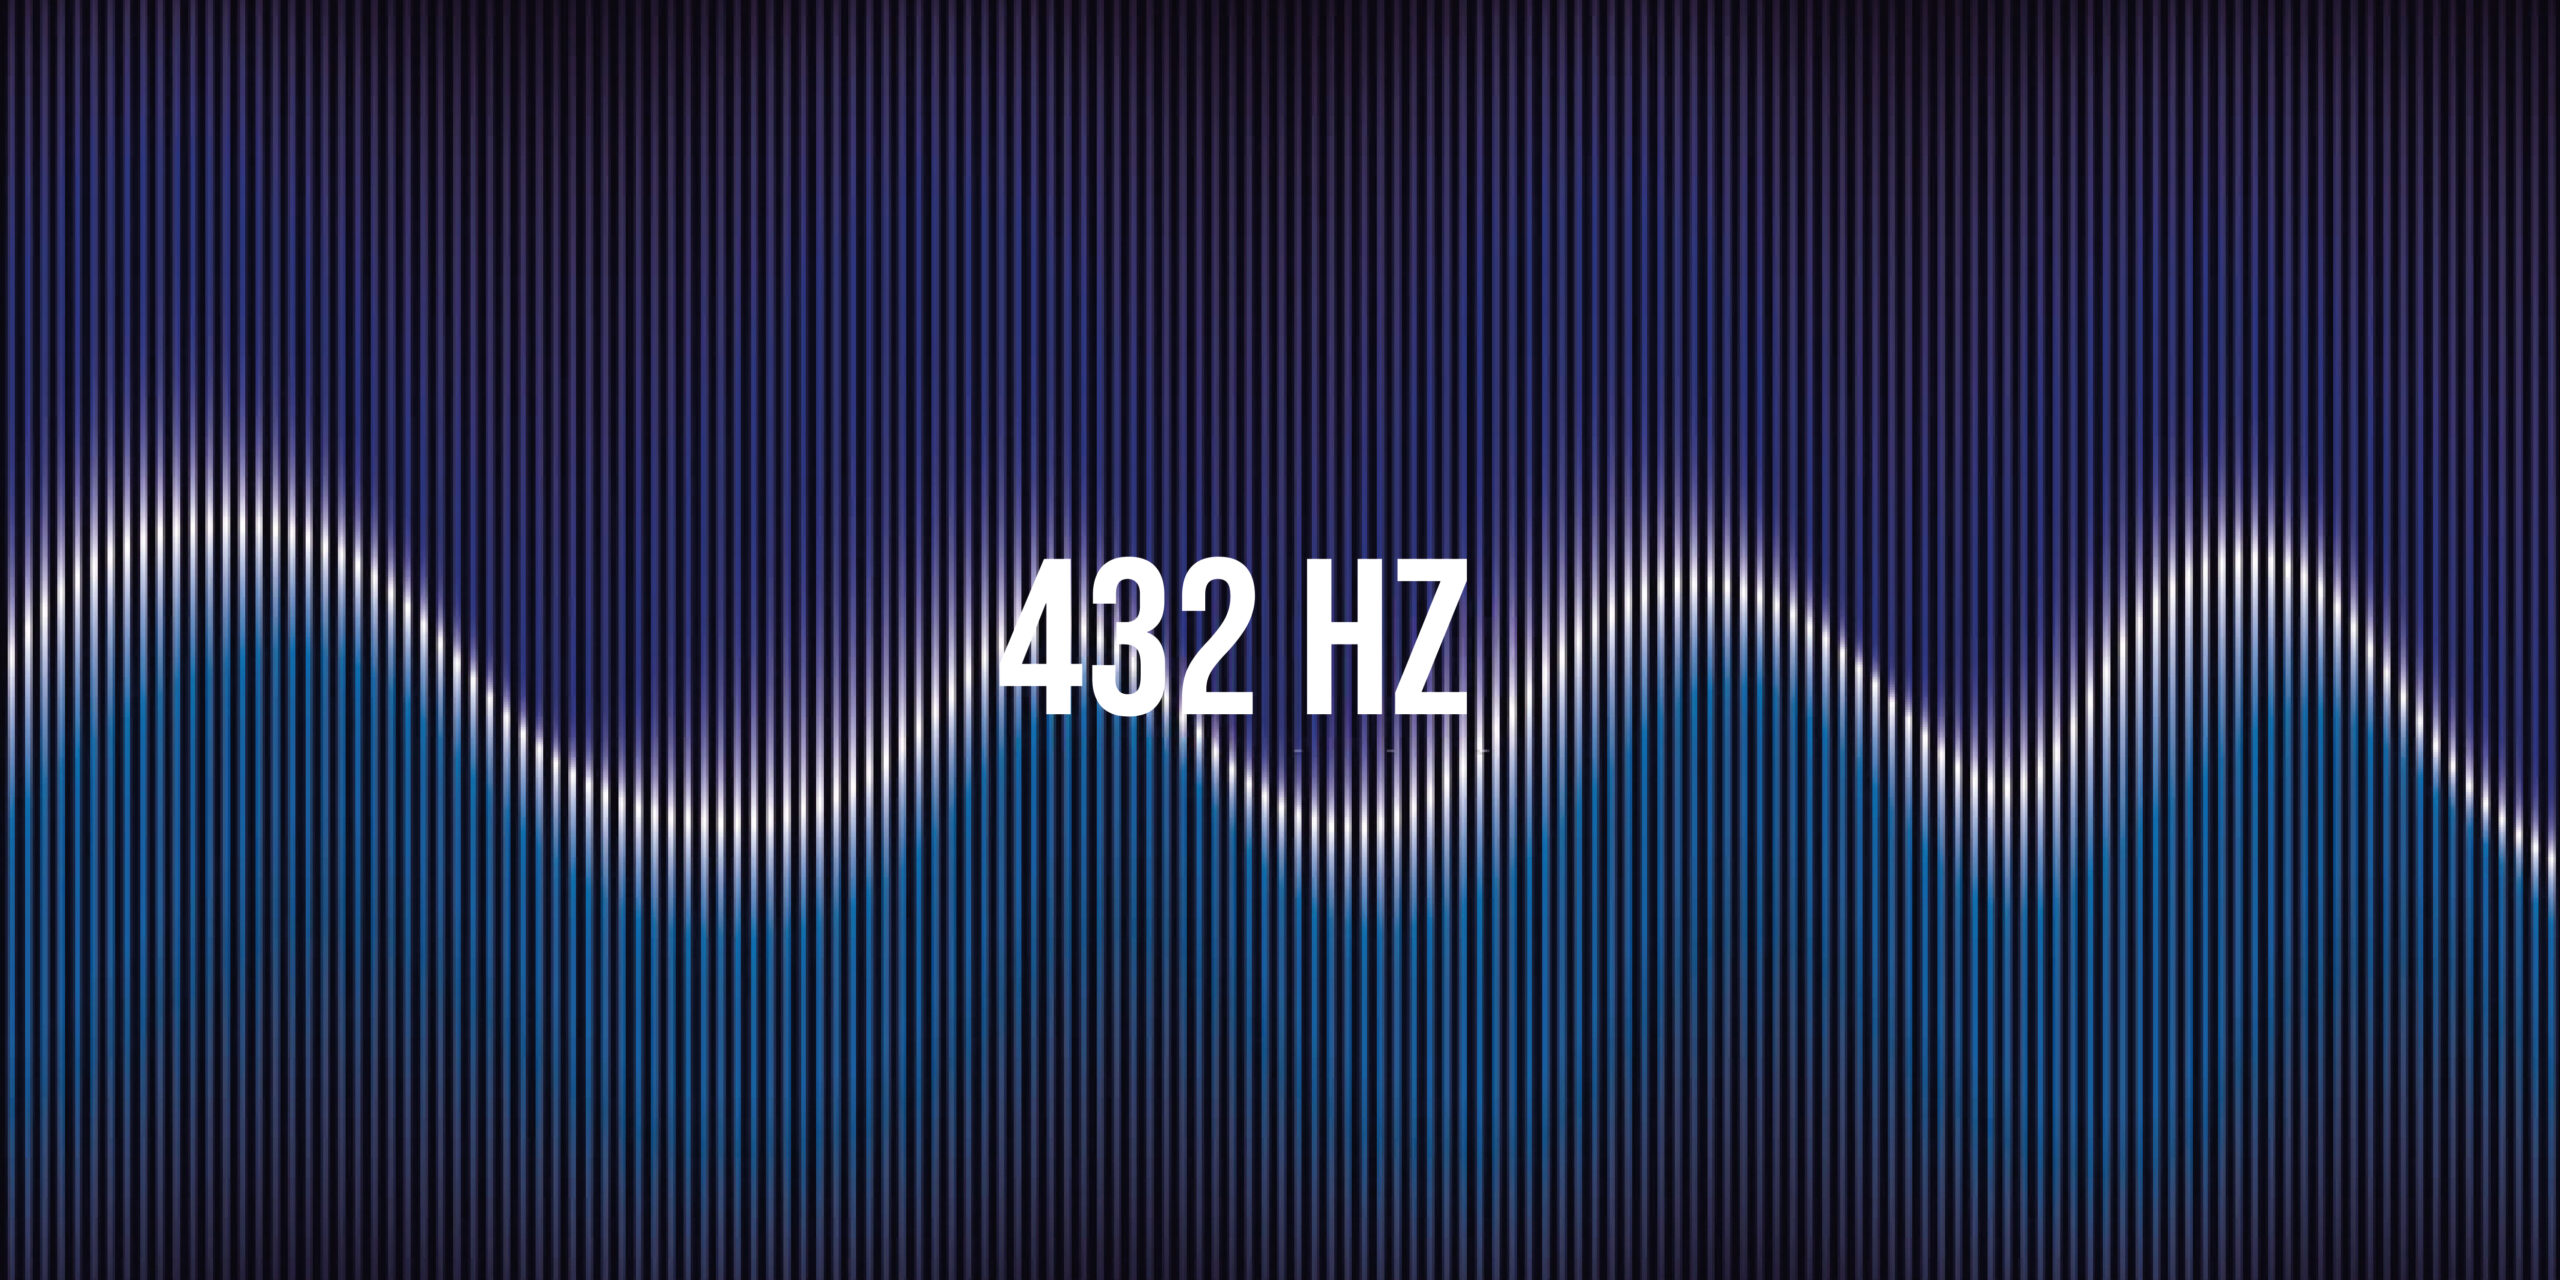 What are the Benefits of 432 Hz?